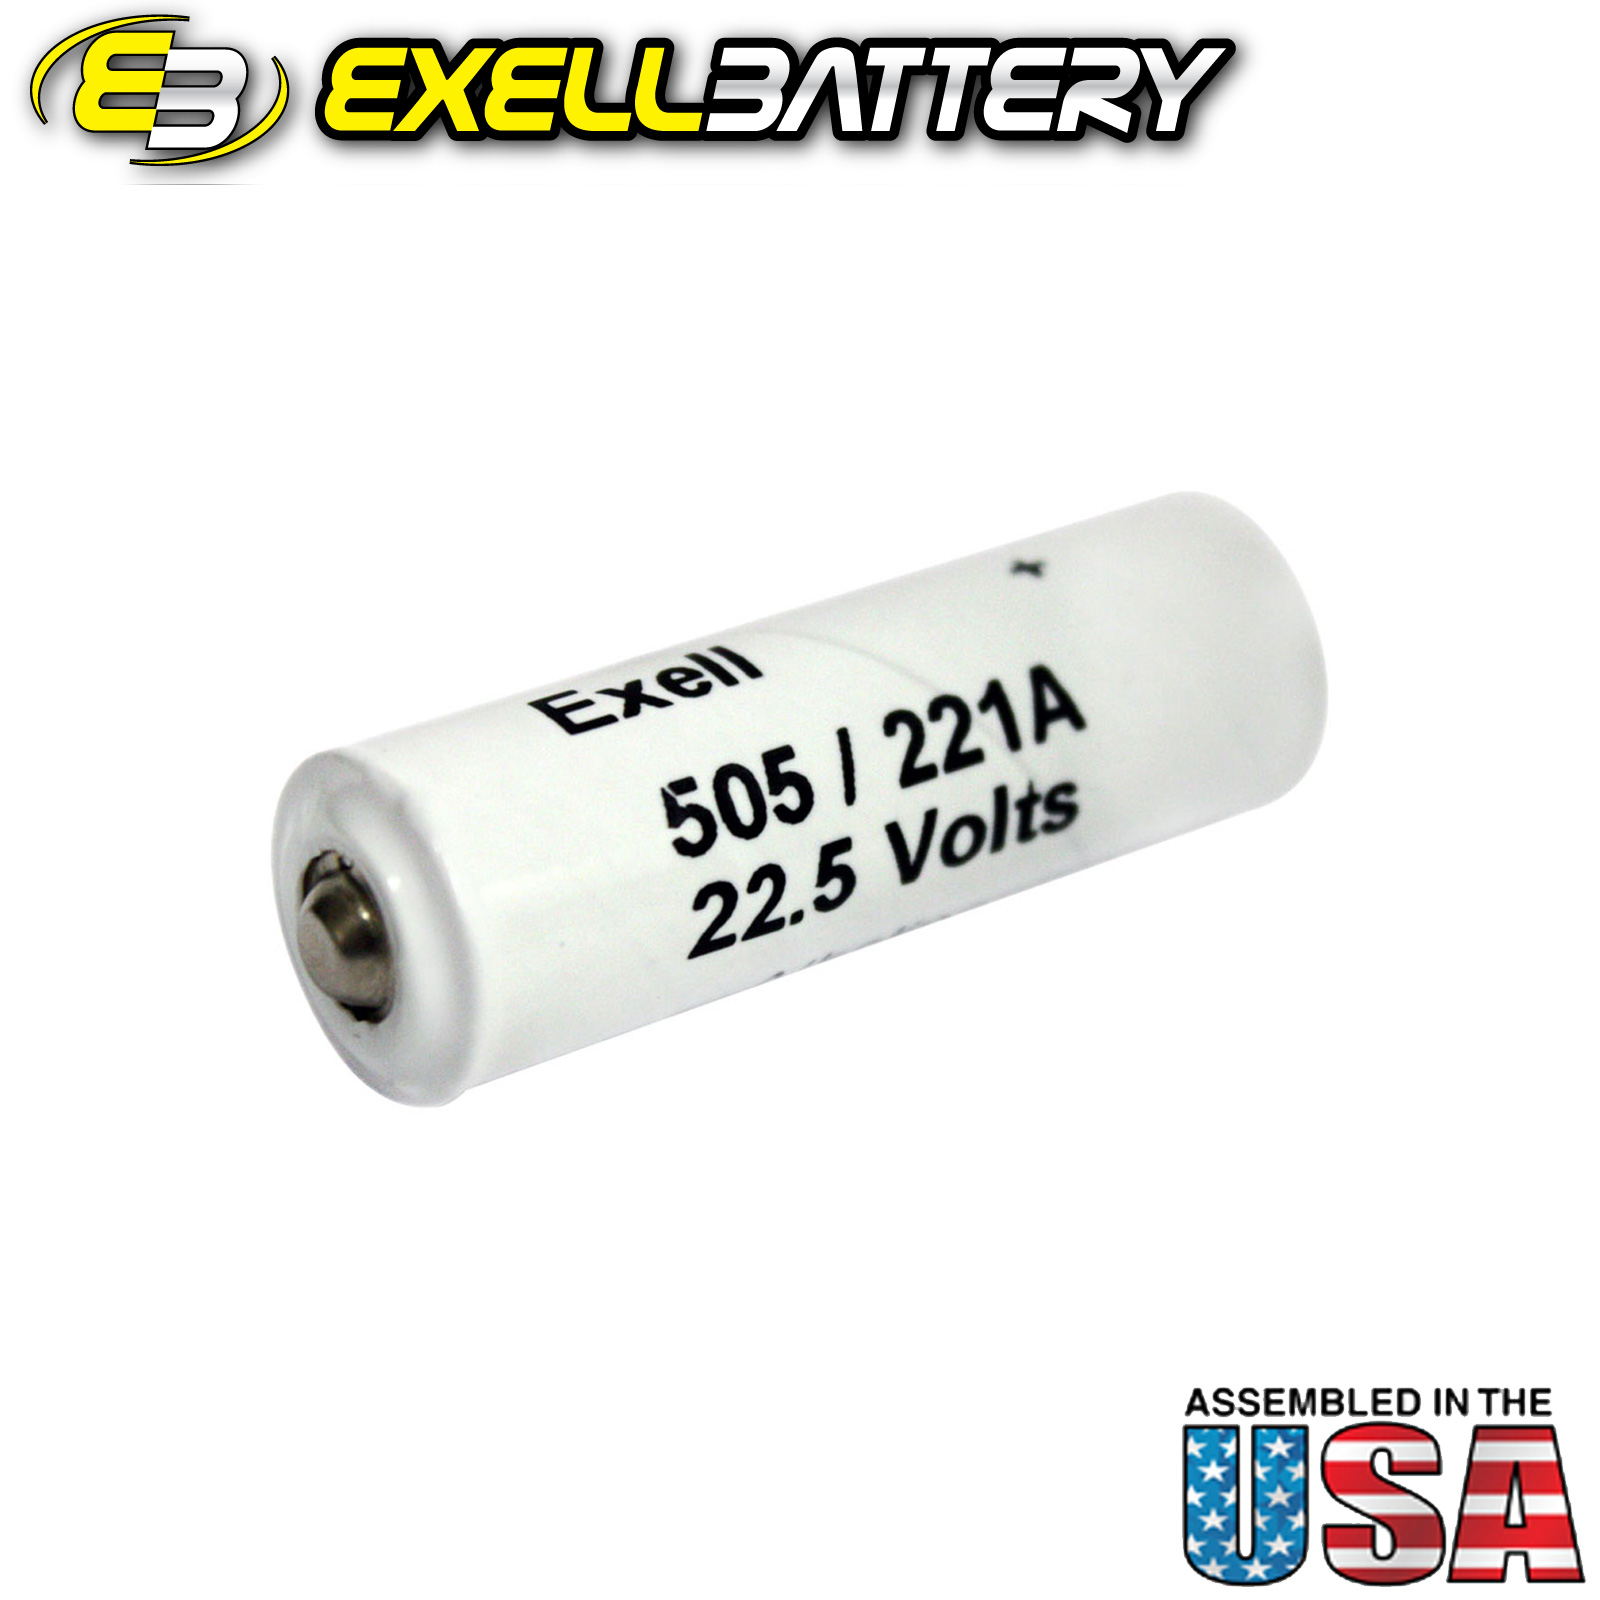 Exell Alkaline Battery A221/505A Replaces NEDA 221 Eveready 505